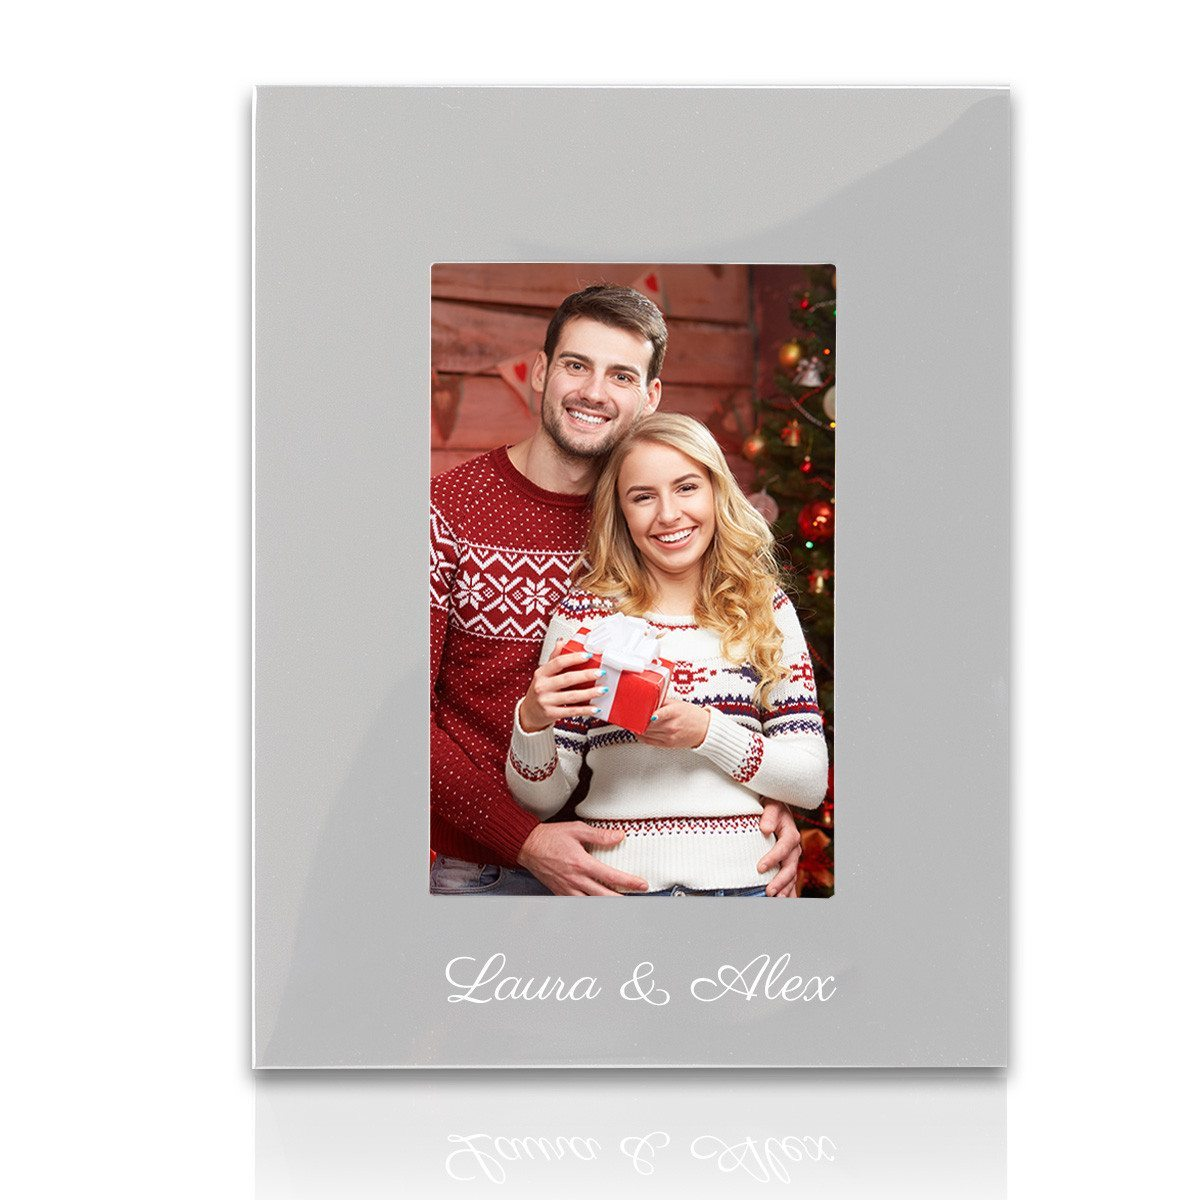 PERSONALIZED TIMELESS PHOTO FRAME